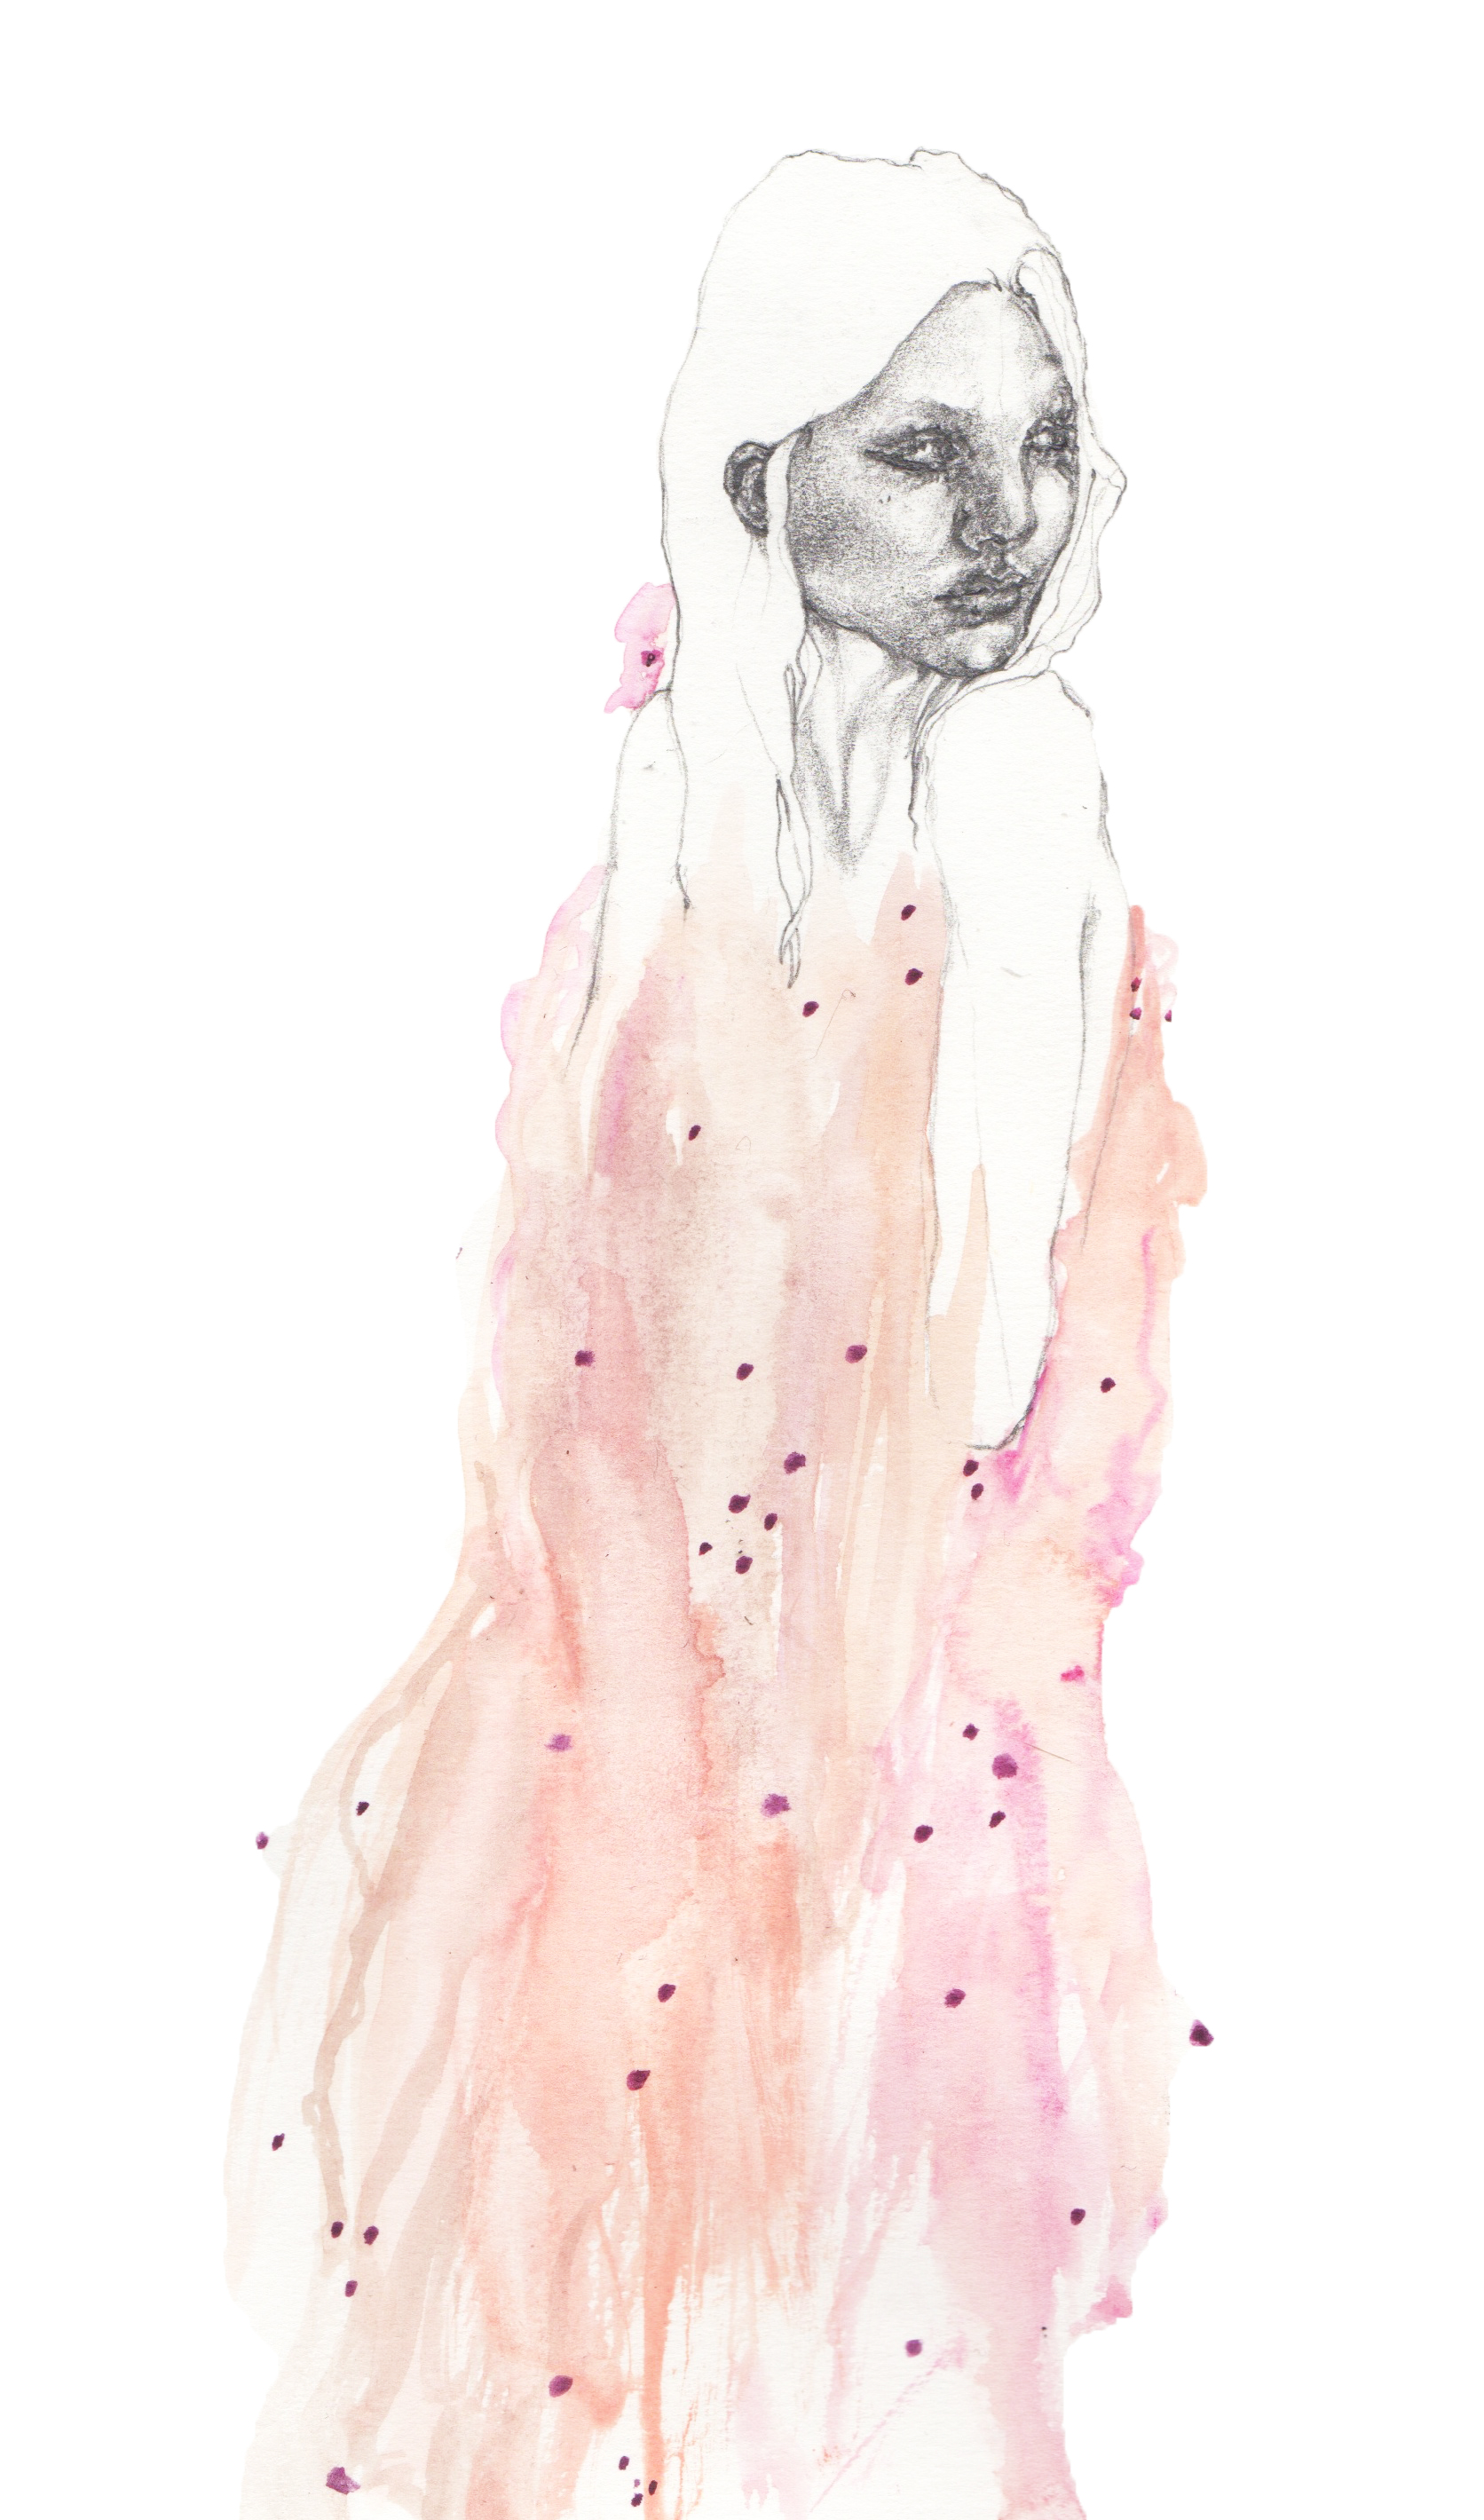 """Expressionistic Splatters of Love {Simone Rocha SS16}"" - Pencil & watercolour on heavyweight paper - 20 cm x 30 cm"